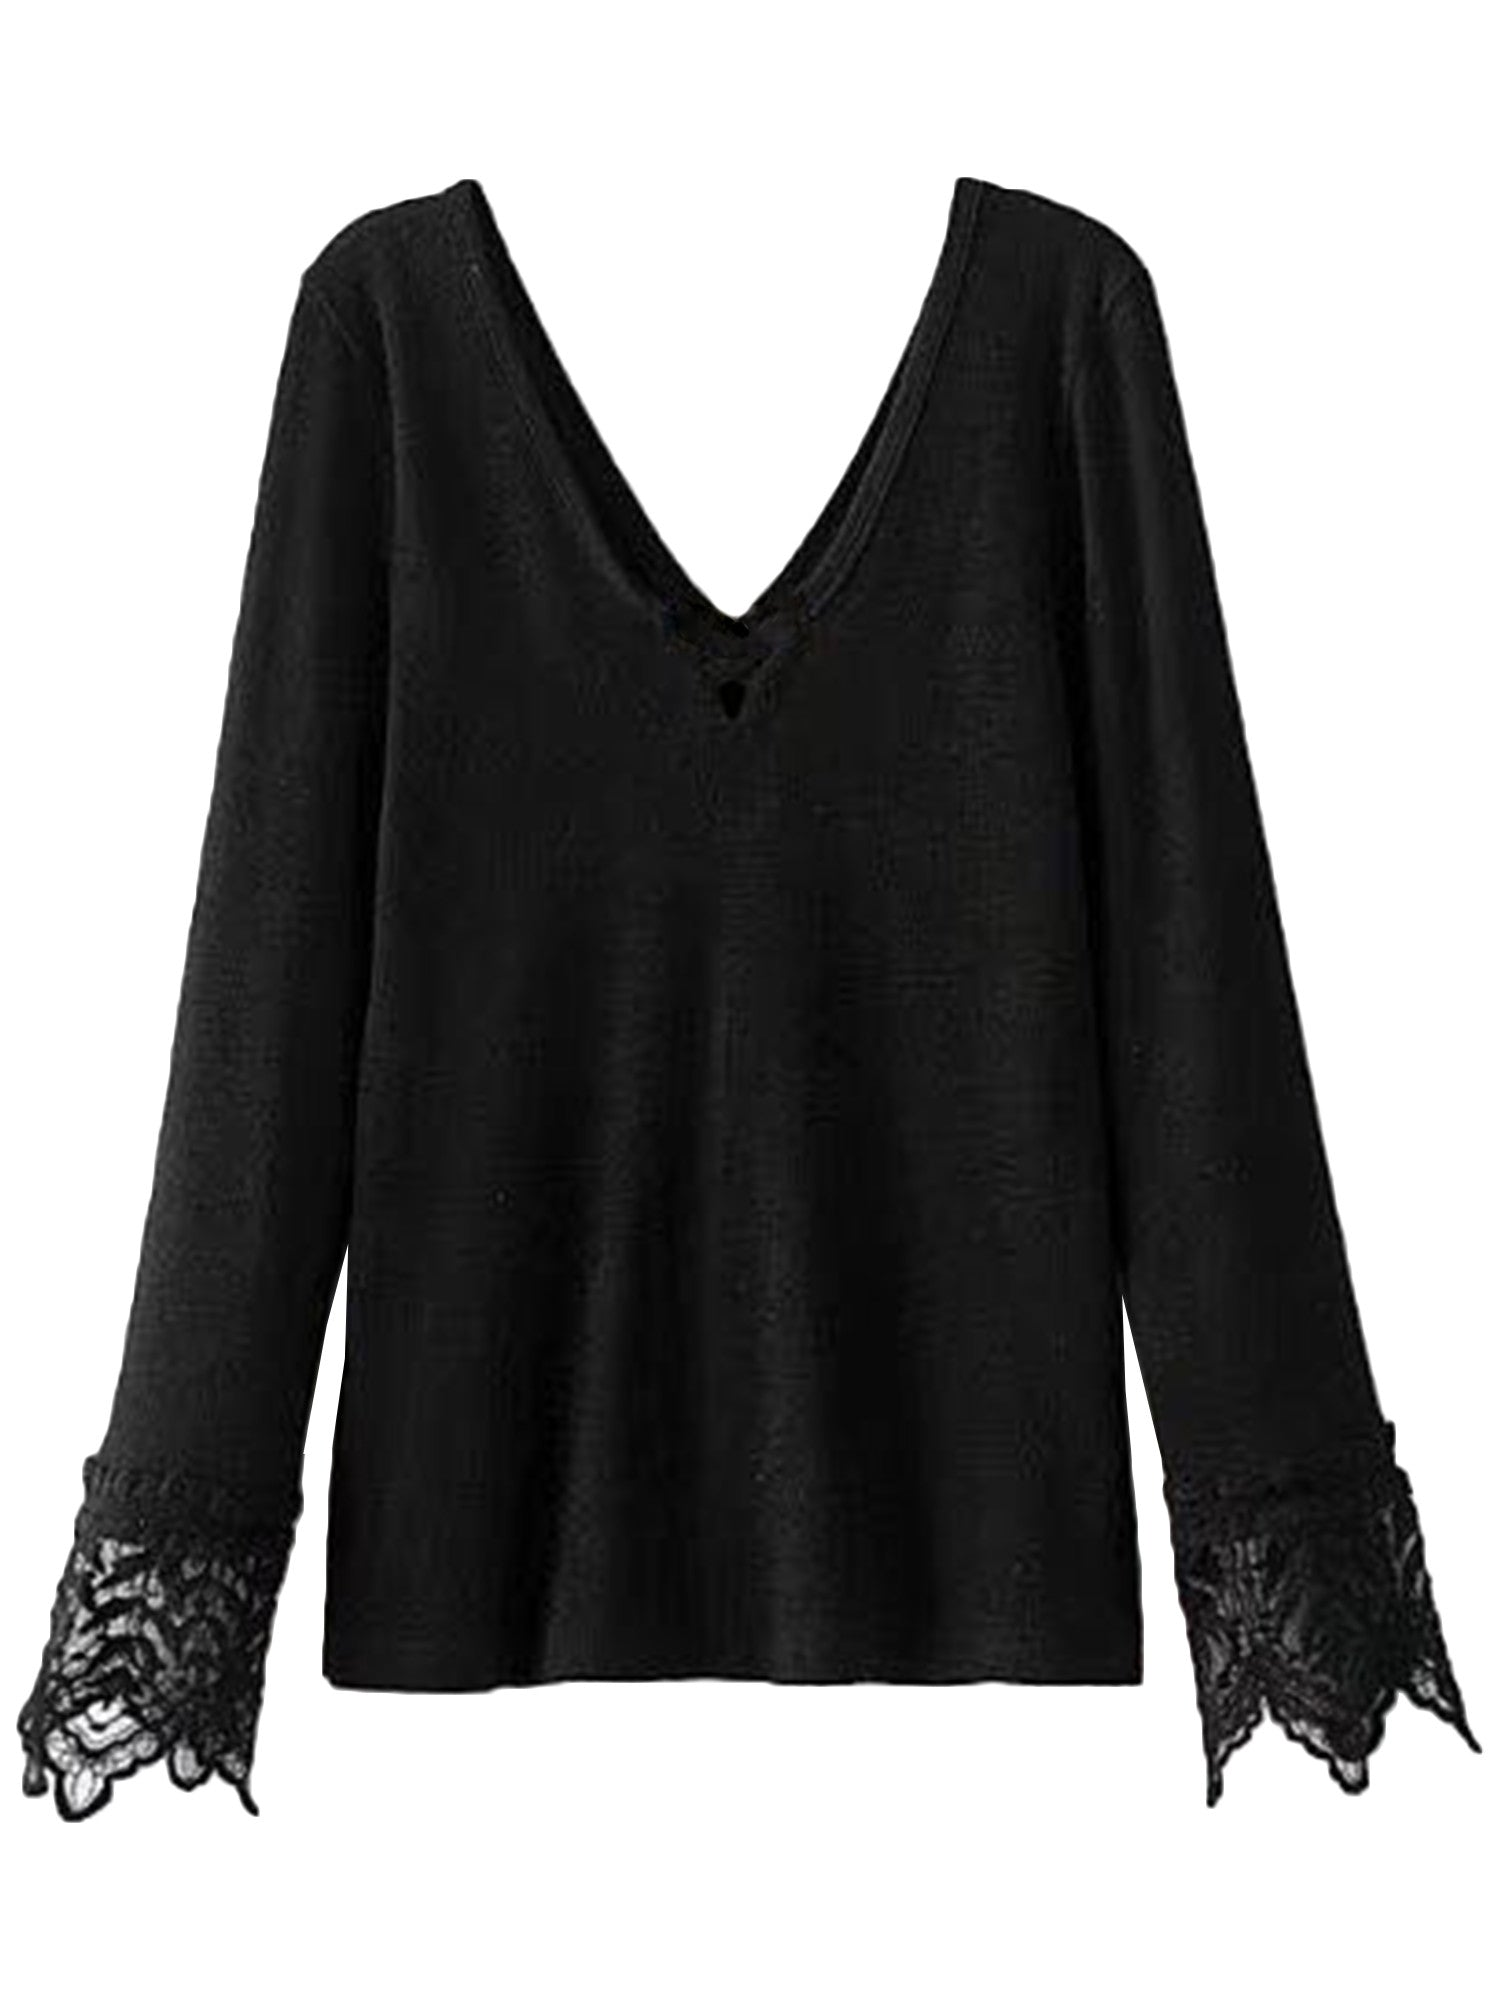 'Selene' V-neck Lace Plaeated Sleeve Top